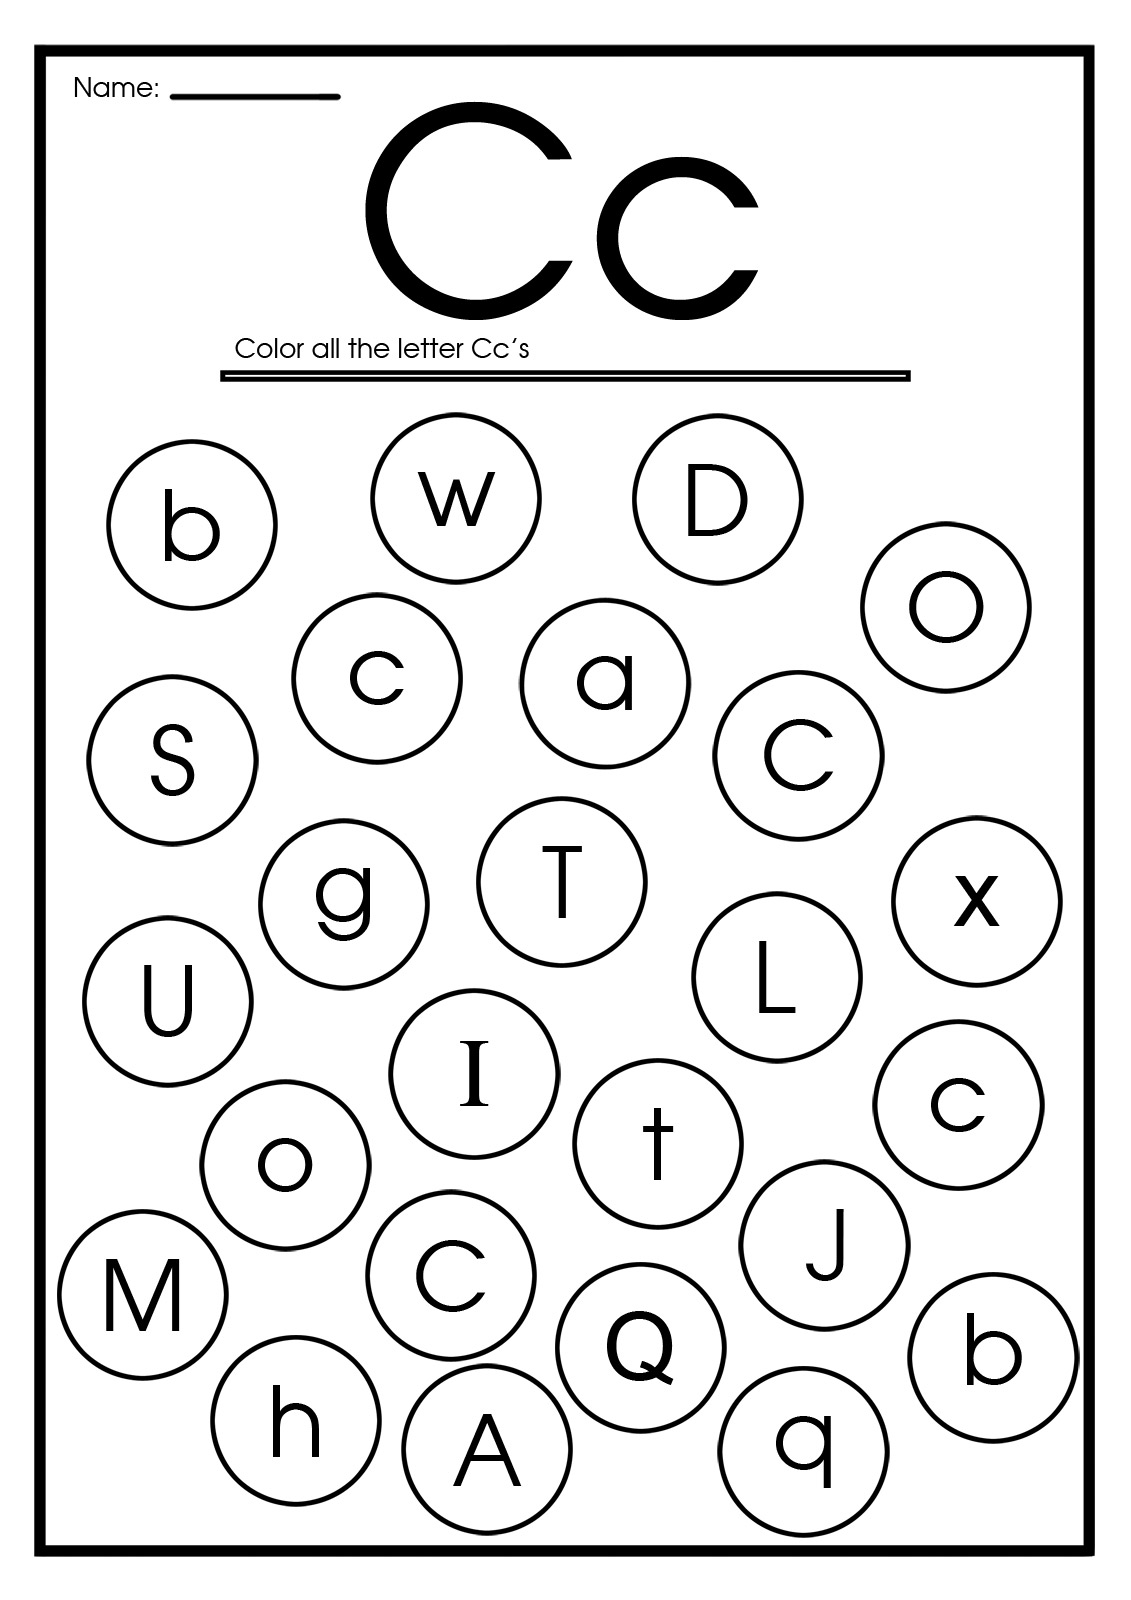 c coloring worksheet letter c song cat song for kids learning abc coloring worksheet c